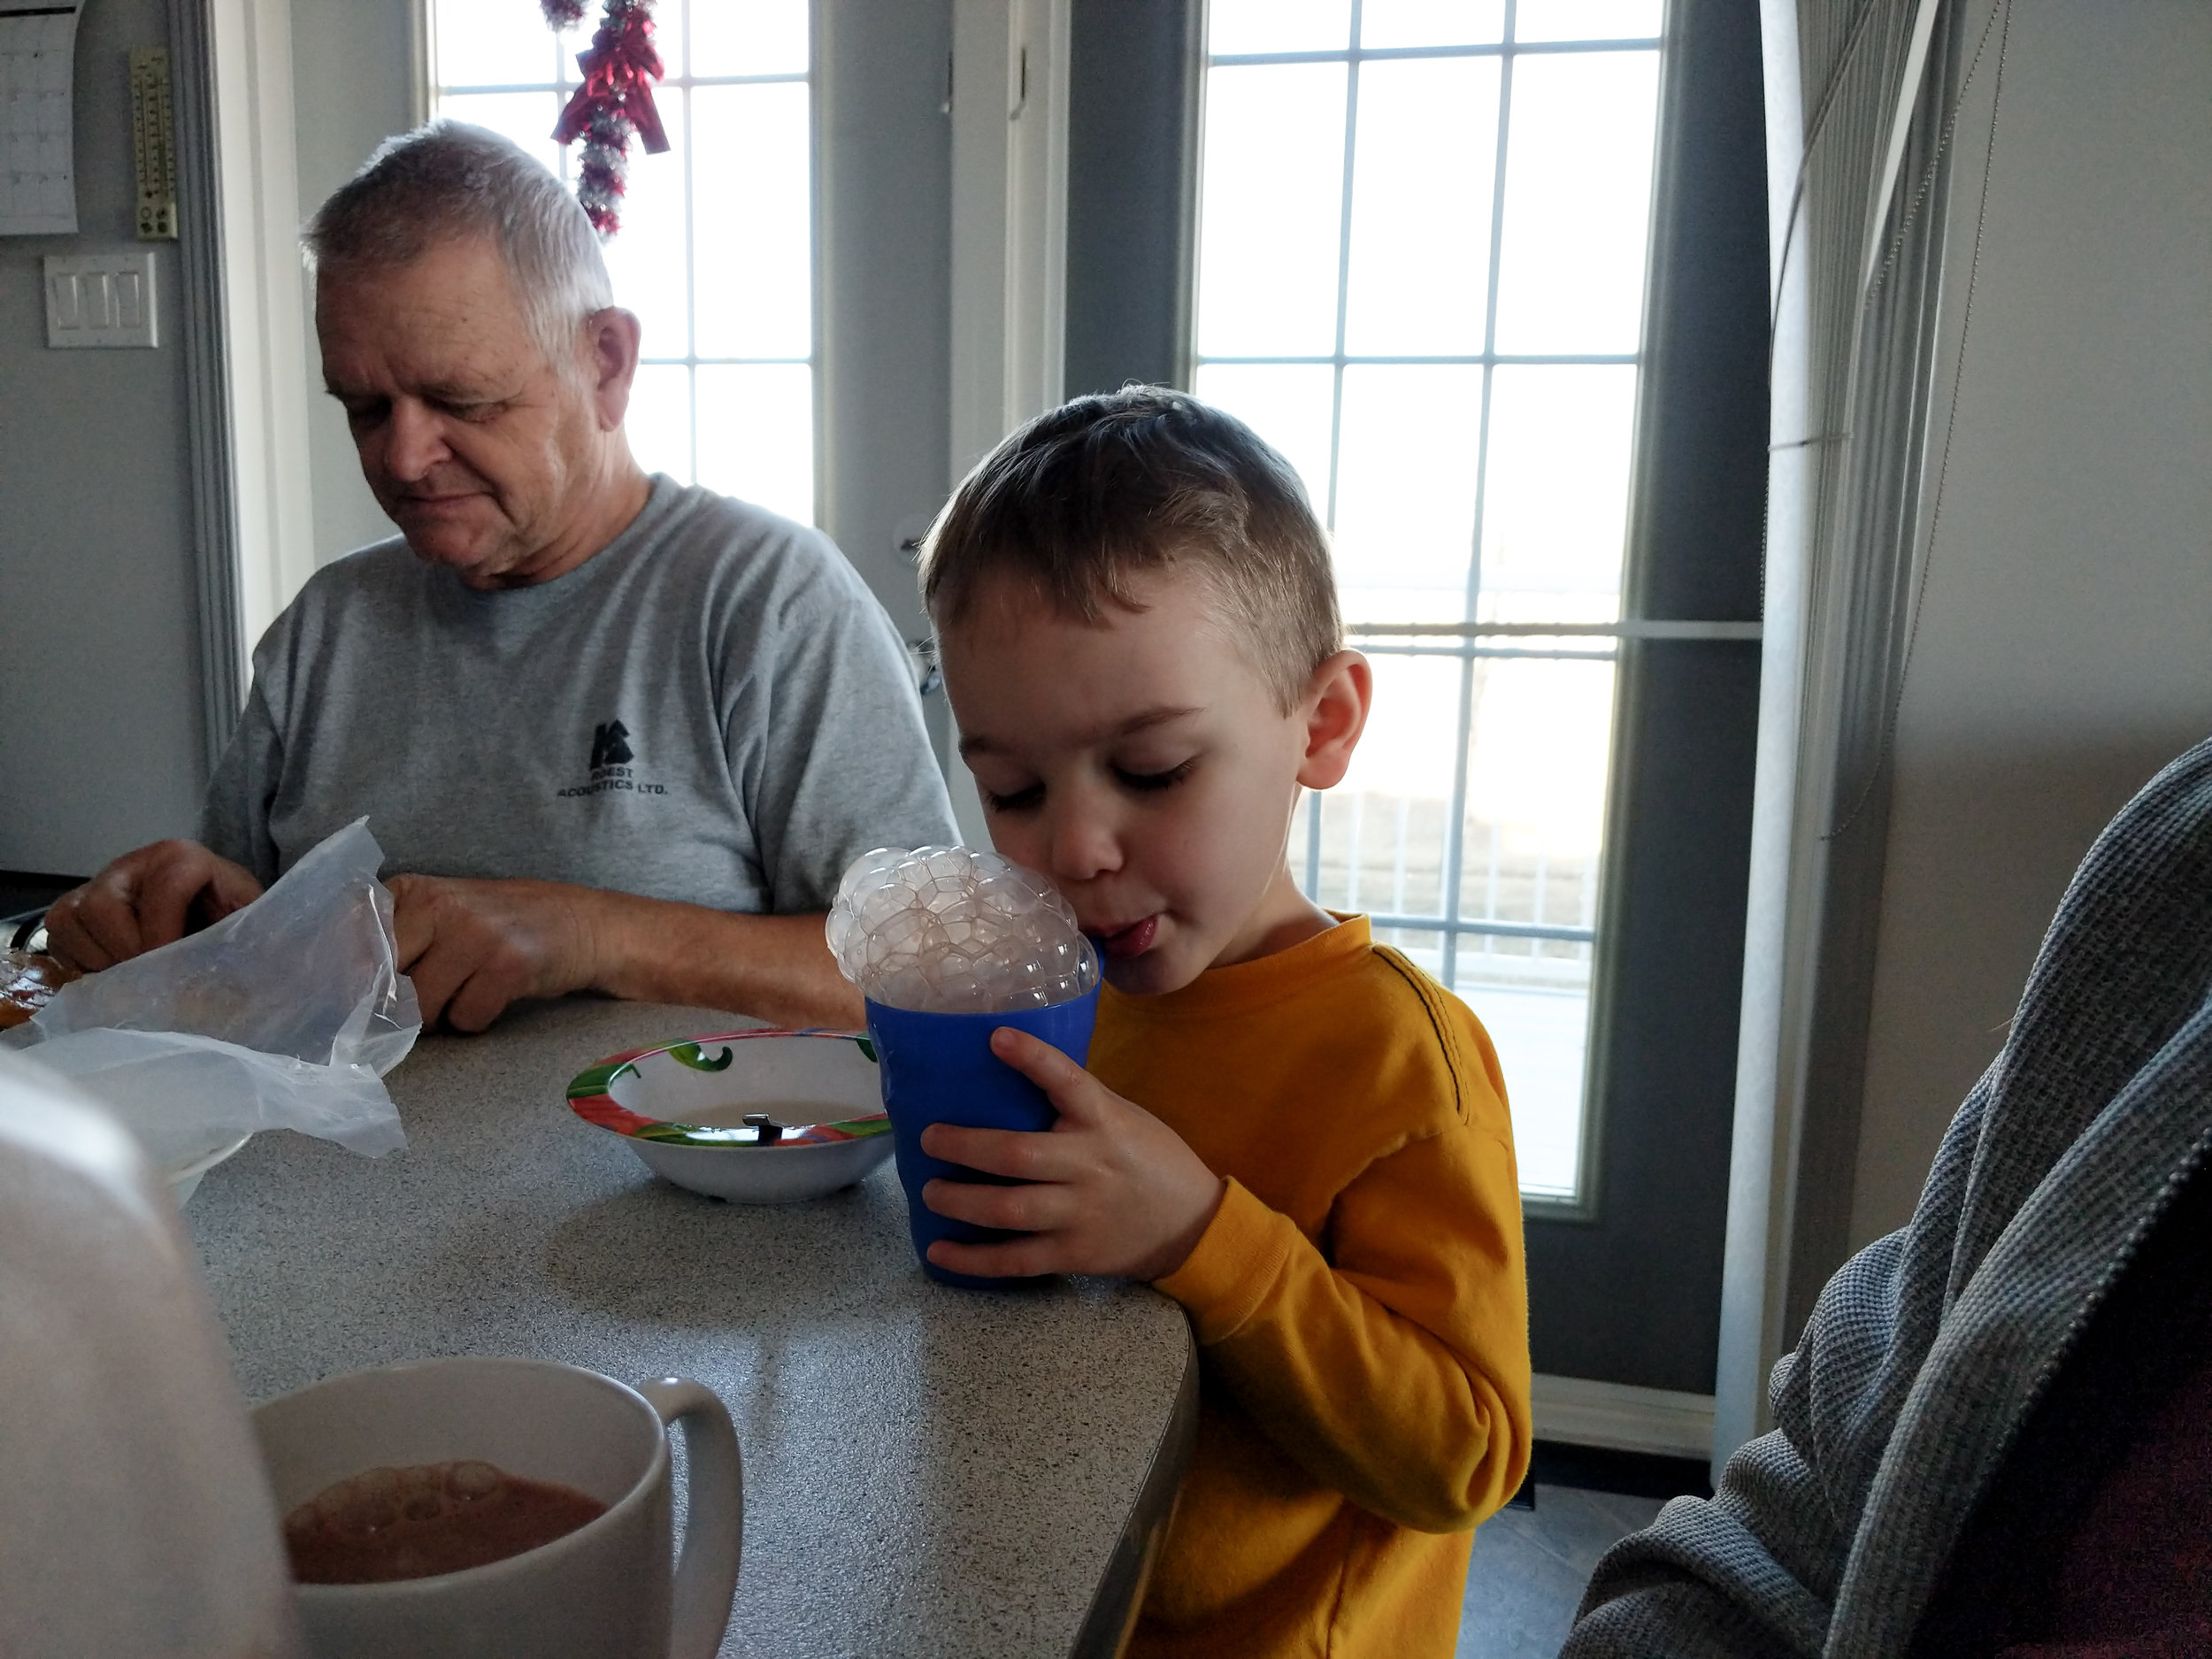 Grandpa the adult in this picture has shown the grandkids the best things. Like making bubbles with your chocolate milk and sugar on buns.